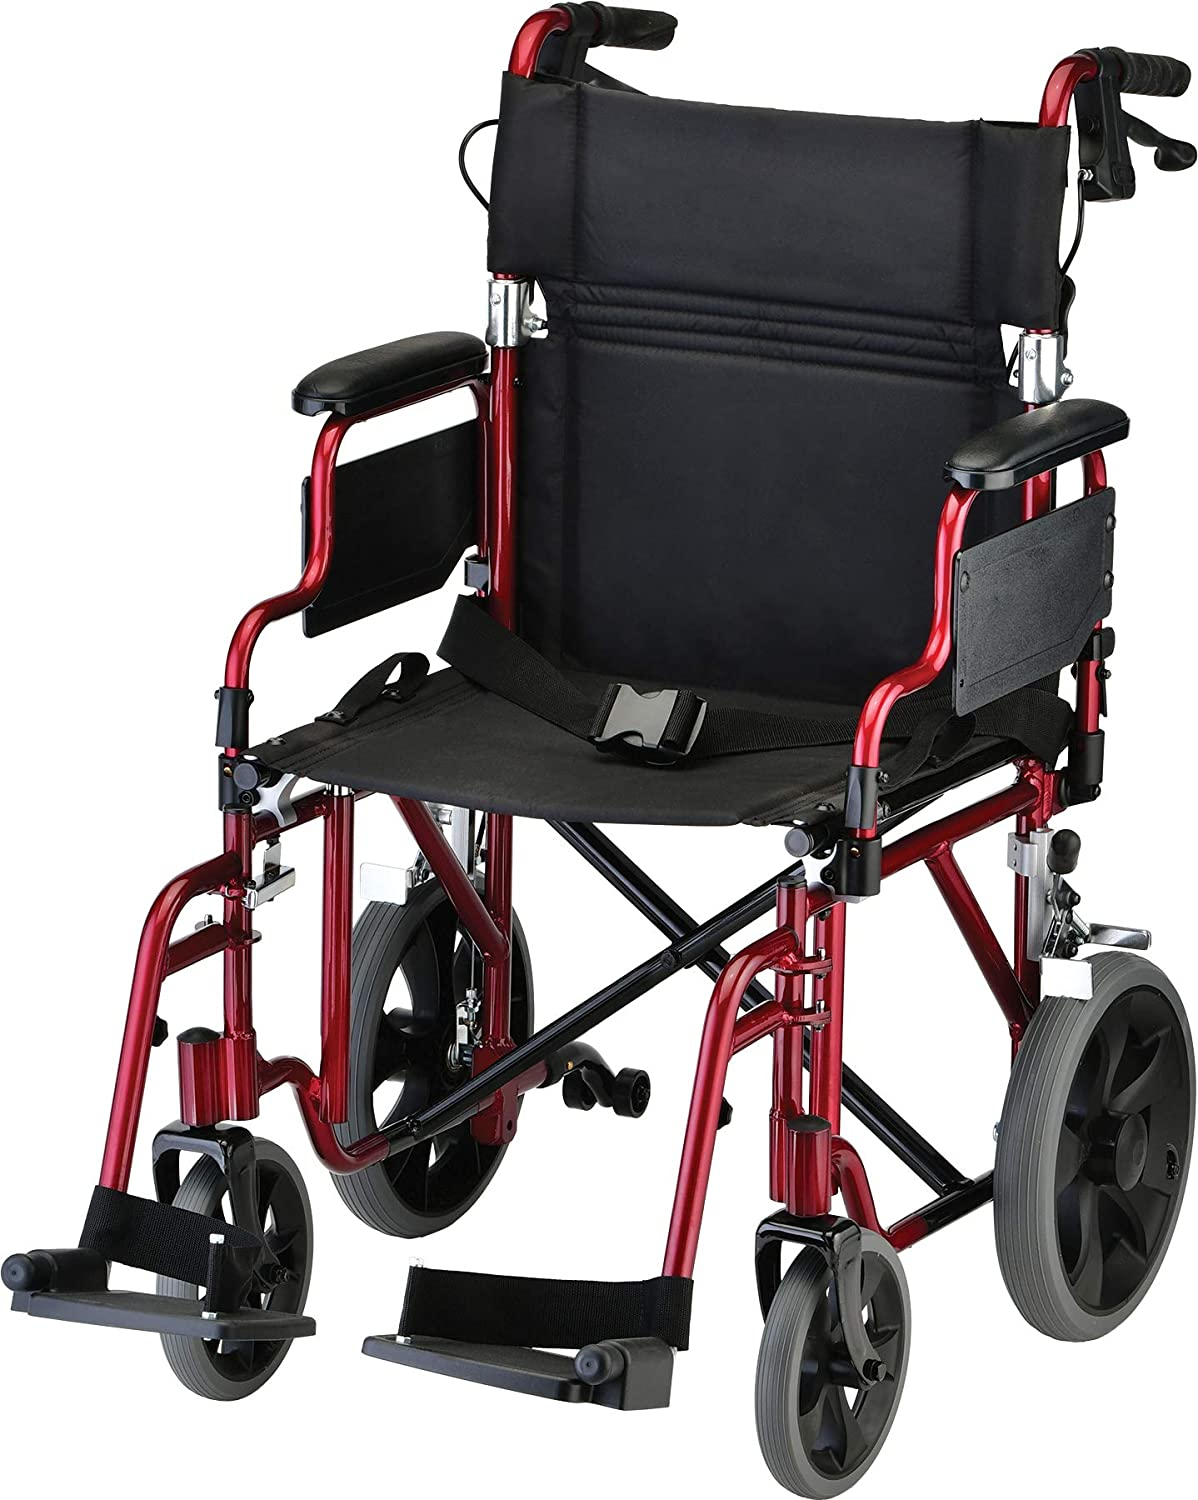 """NOVA Lightweight Transport Chair with Locking Hand Brakes, 12"""" Rear Wheels, Removable & Flip Up Arms for Easy Transfer, Anti-Tippers Included, Red: Amazon.in: Health & Personal Care"""